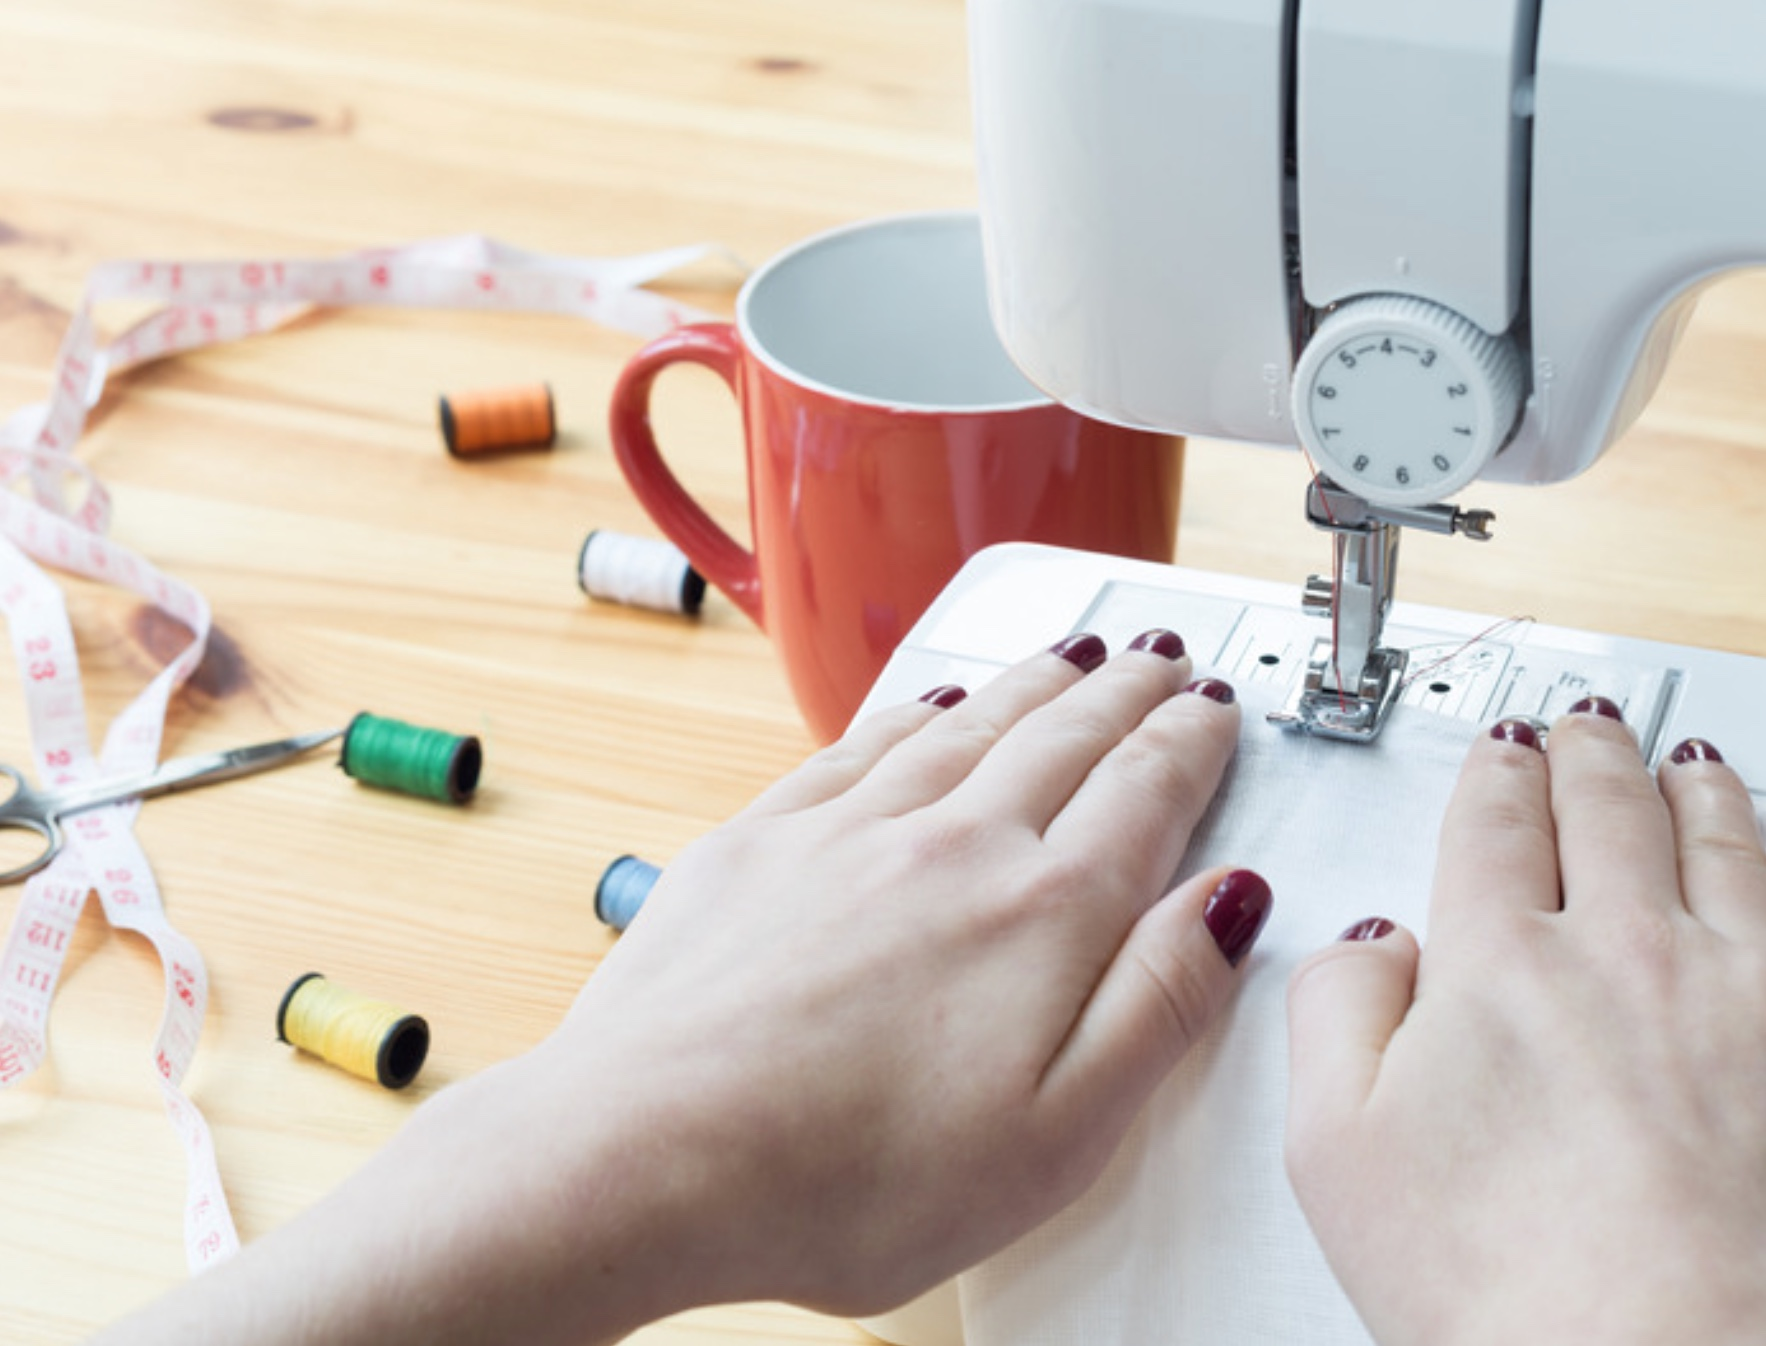 Stitch length for successful sewing